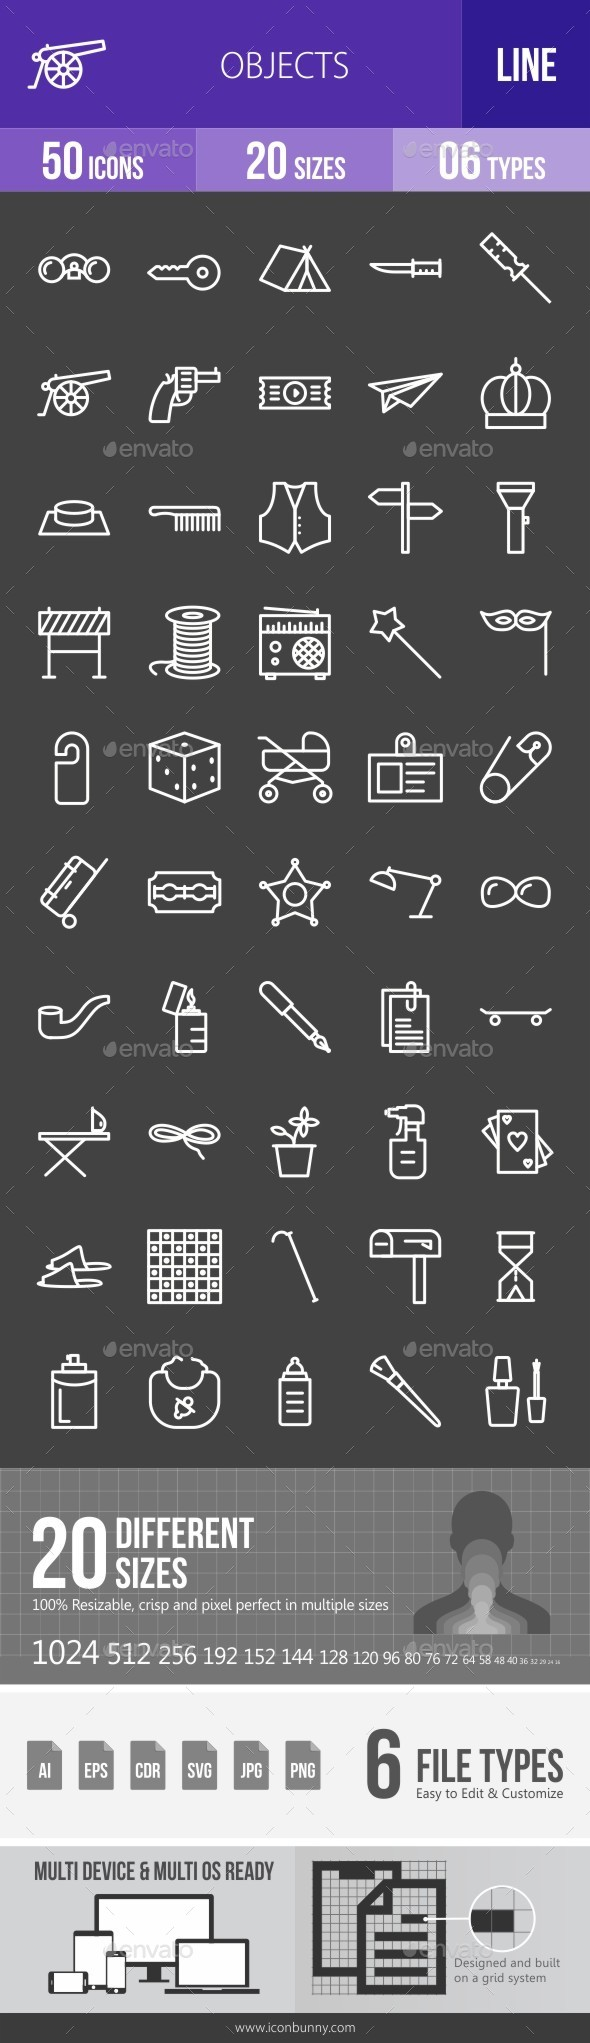 Objects Line Inverted Icons - Icons